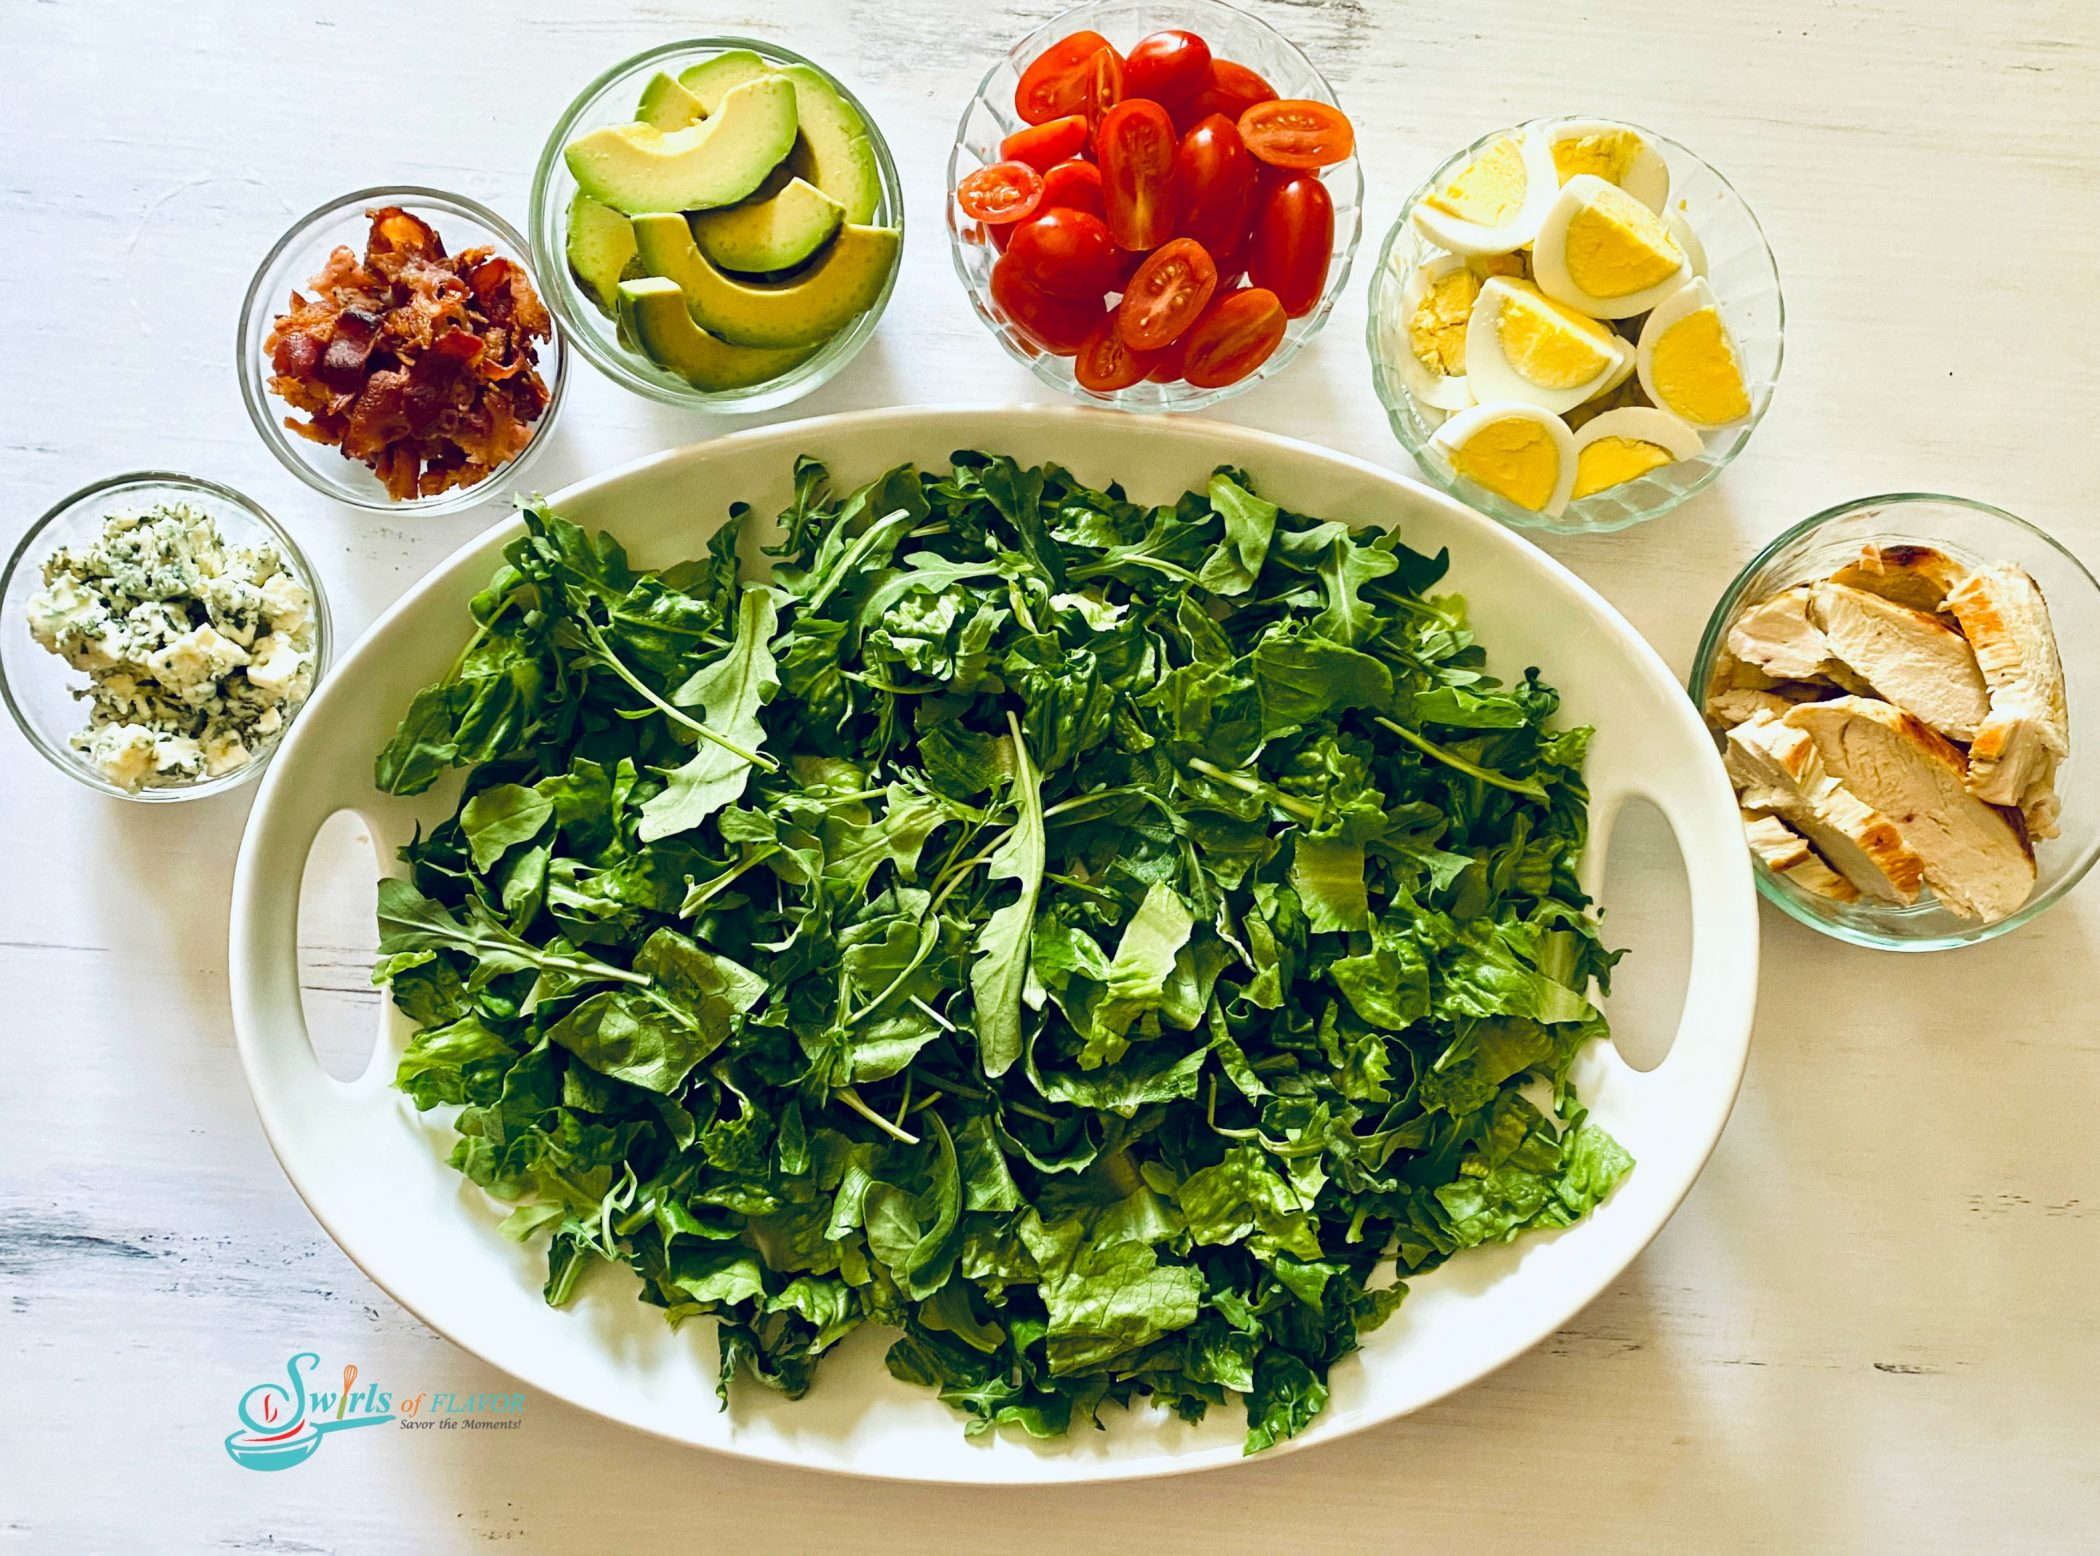 Large oval platter filled with chopped greens and small bowls of Cobb Salad ingredients